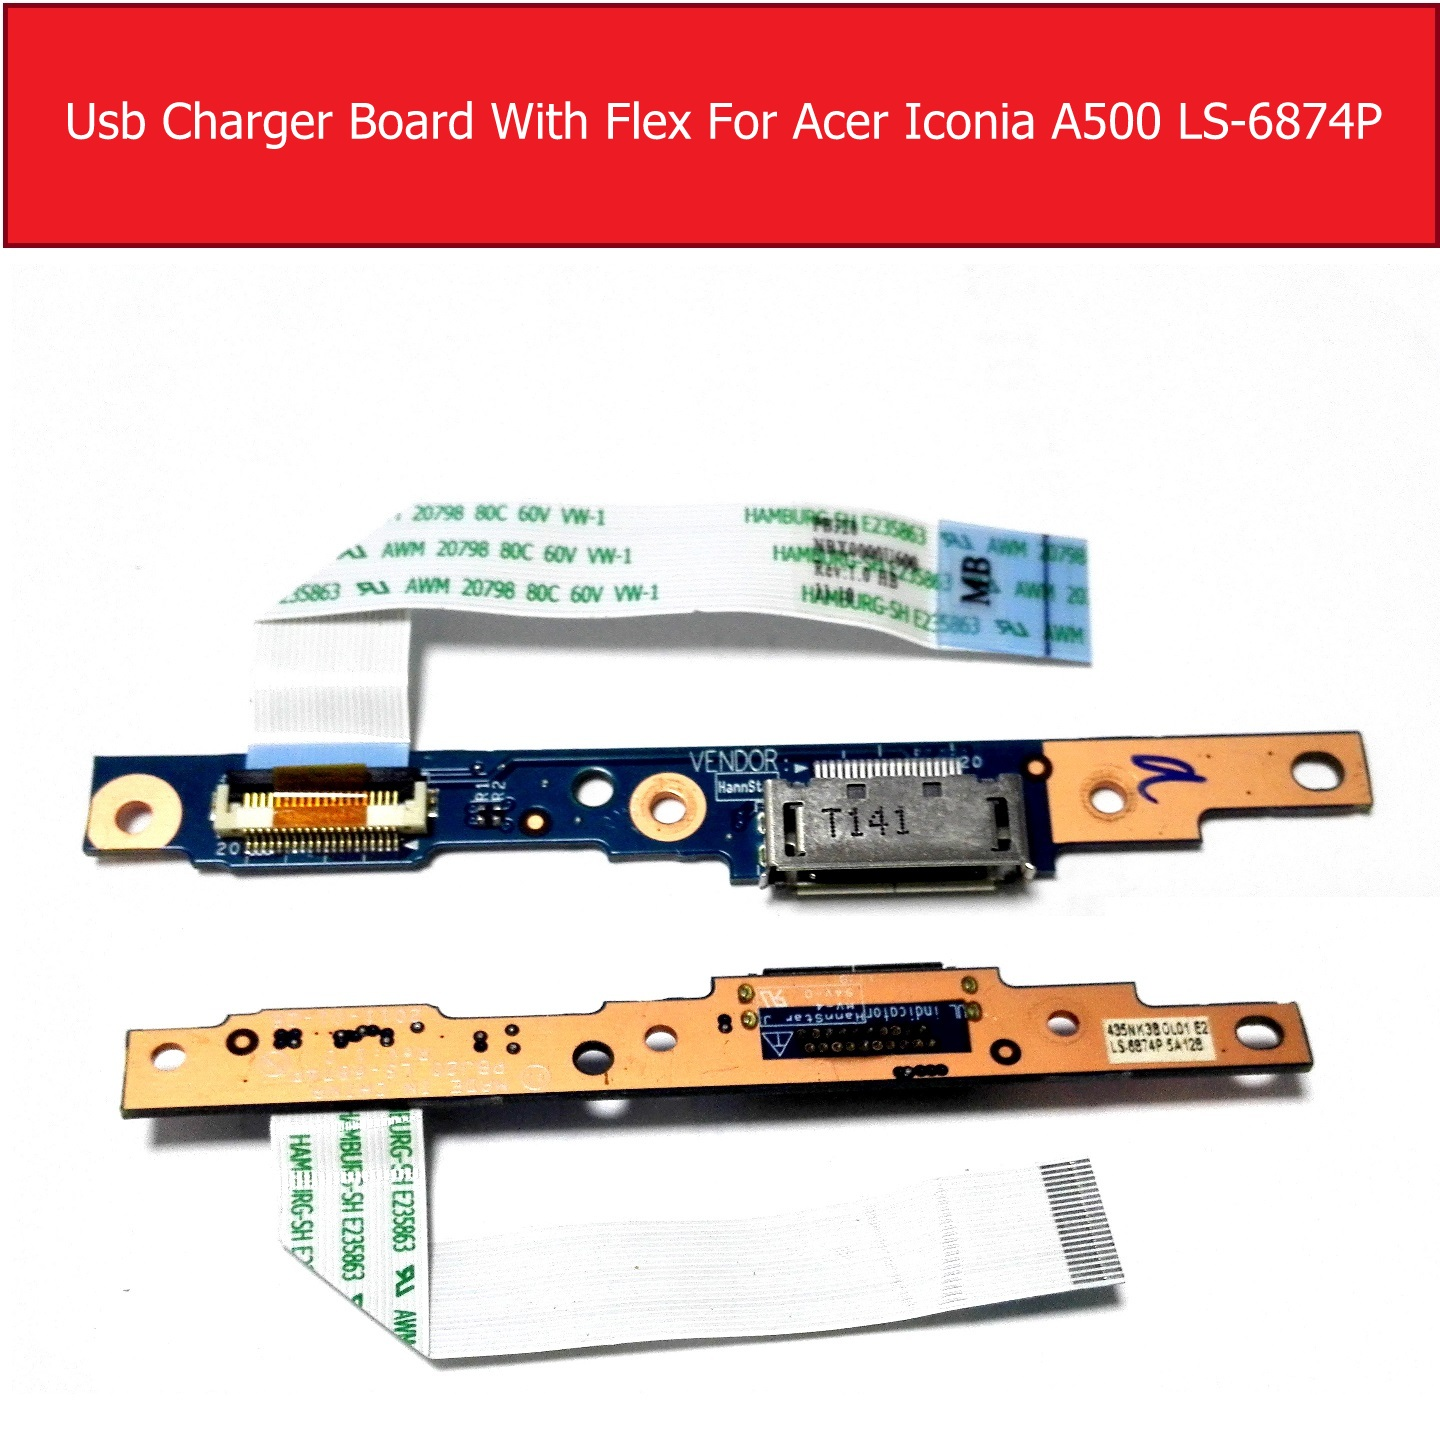 genuine usb charger board with flex for acer iconia a500 ls 6874pgenuine usb charger board with flex for acer iconia a500 ls 6874p tablet charger dock board with cable ls 6874p tested good in tablet lcds \u0026 panels from